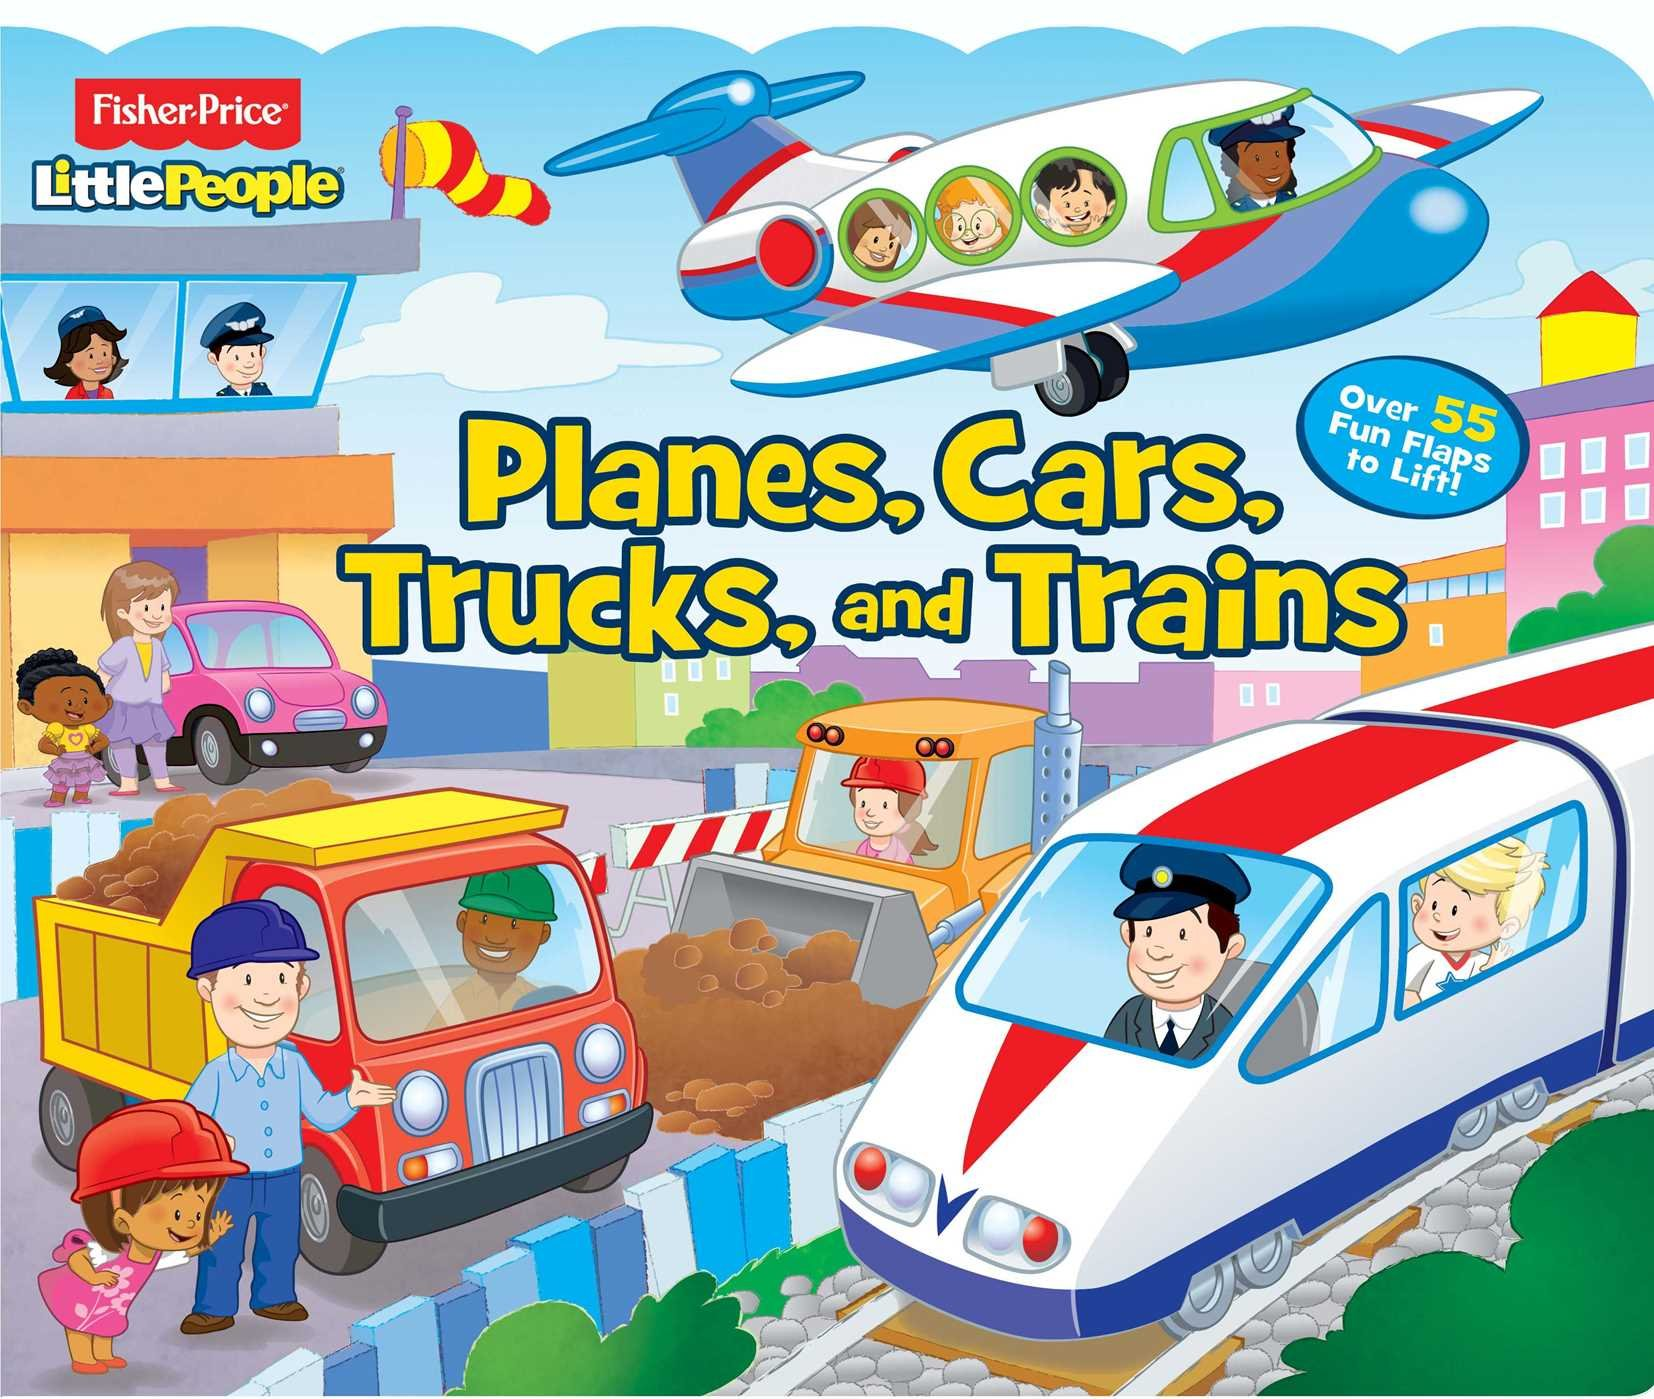 fisher price little people planes cars trucks and trains lift